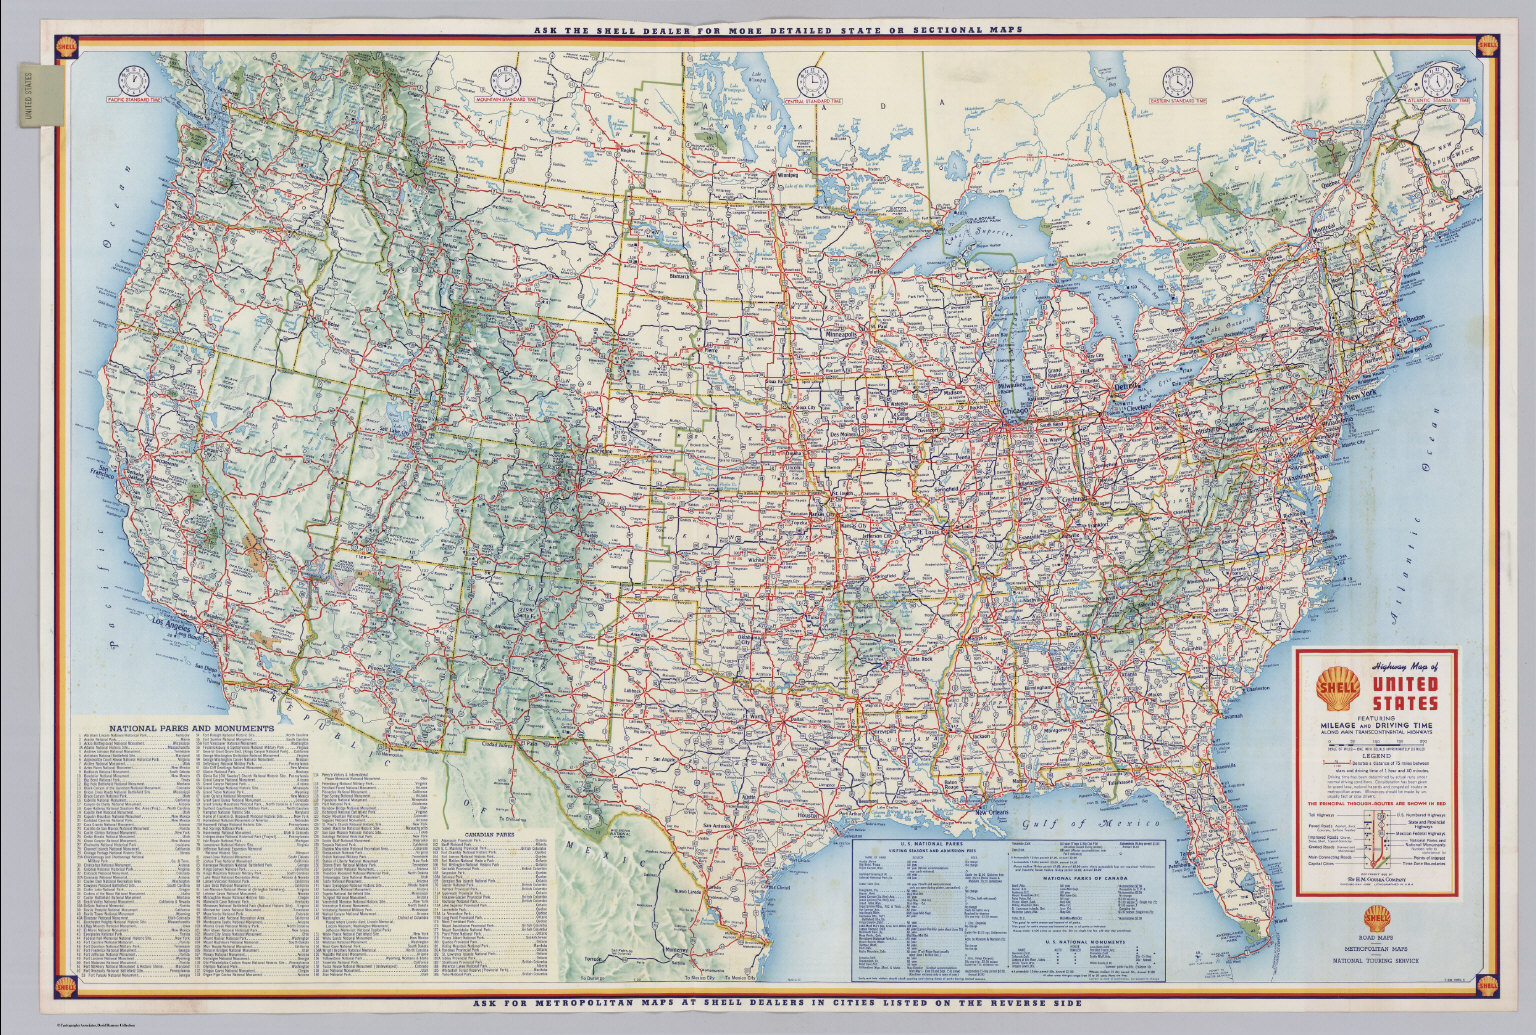 Shell Highway Map Of United States David Rumsey Historical Map - Map of highways in us